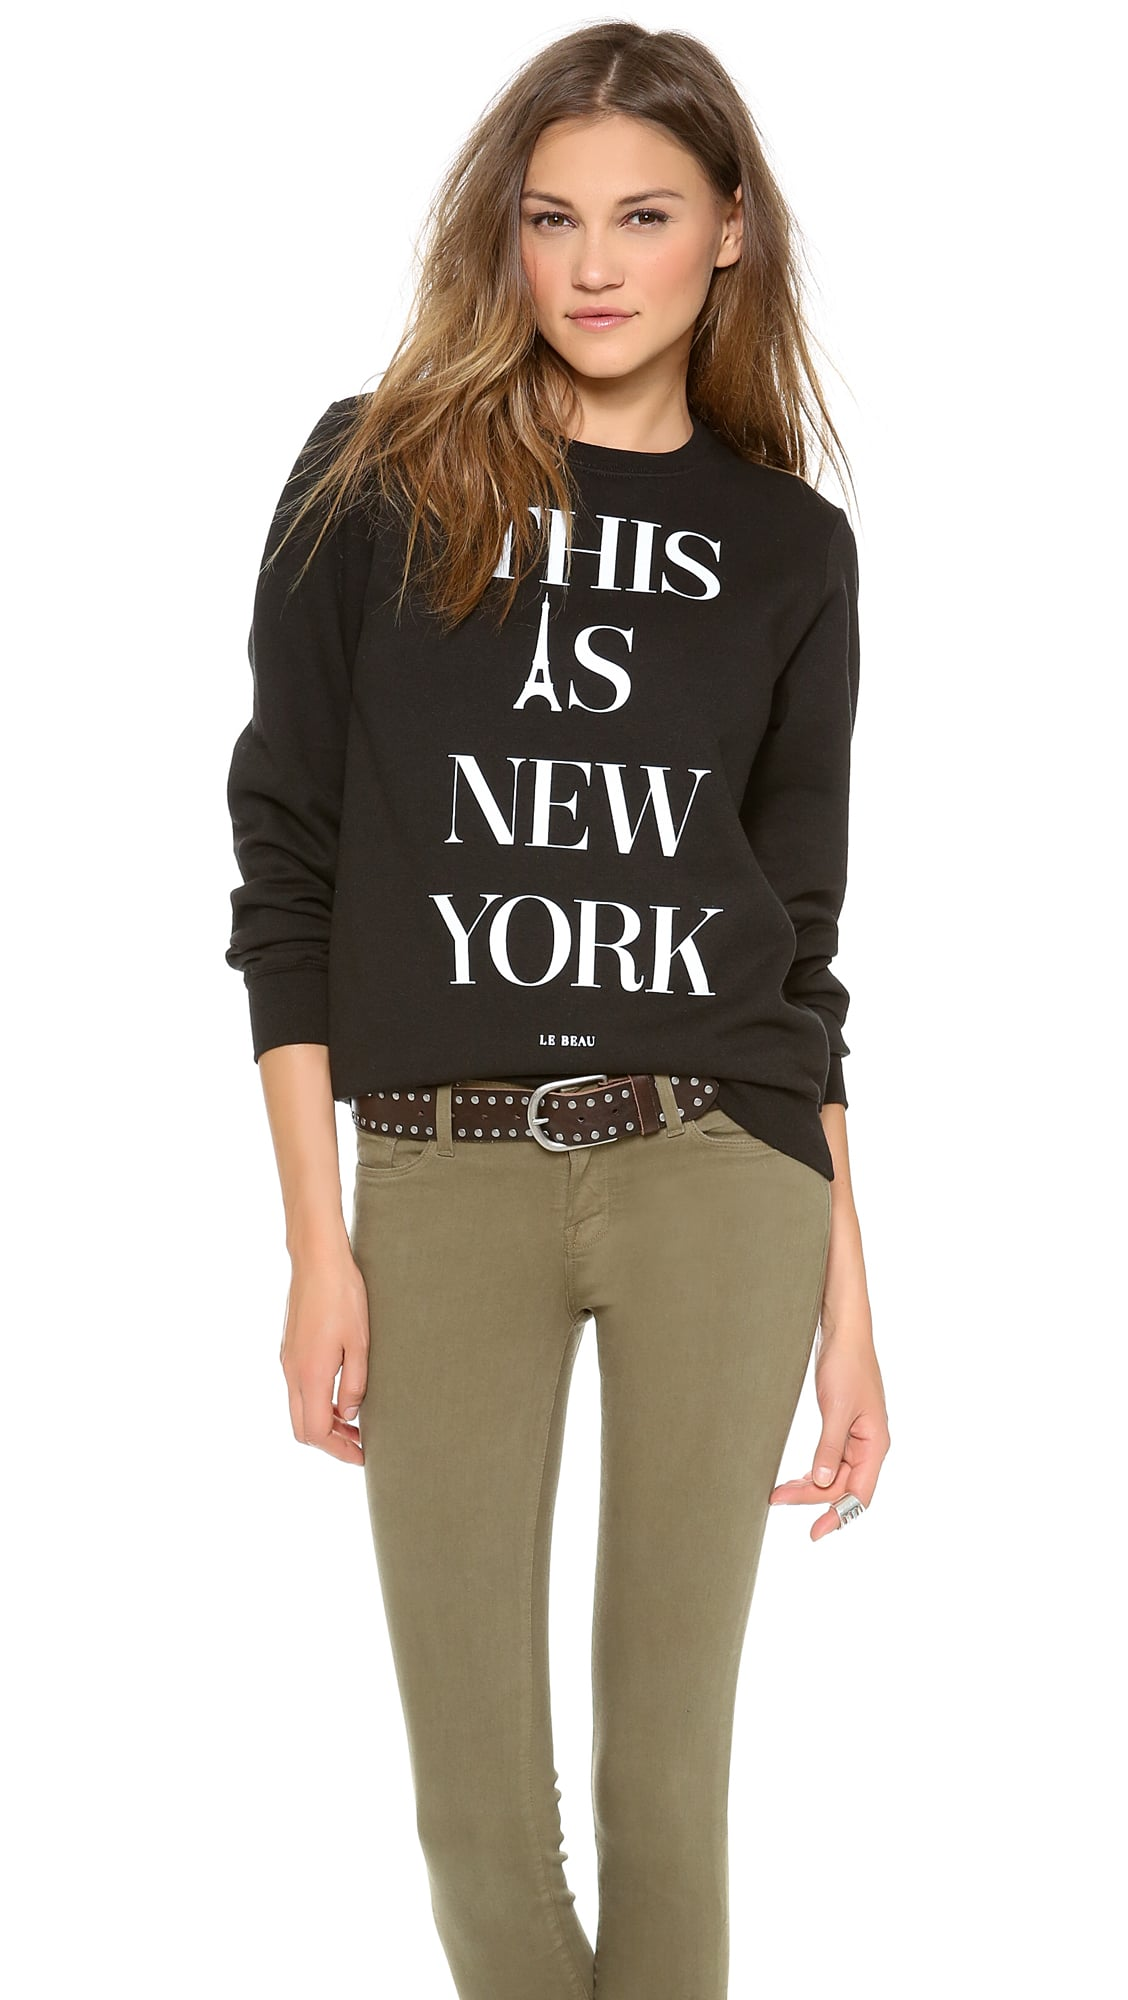 Le Beau This Is New York Sweatshirt ($53)